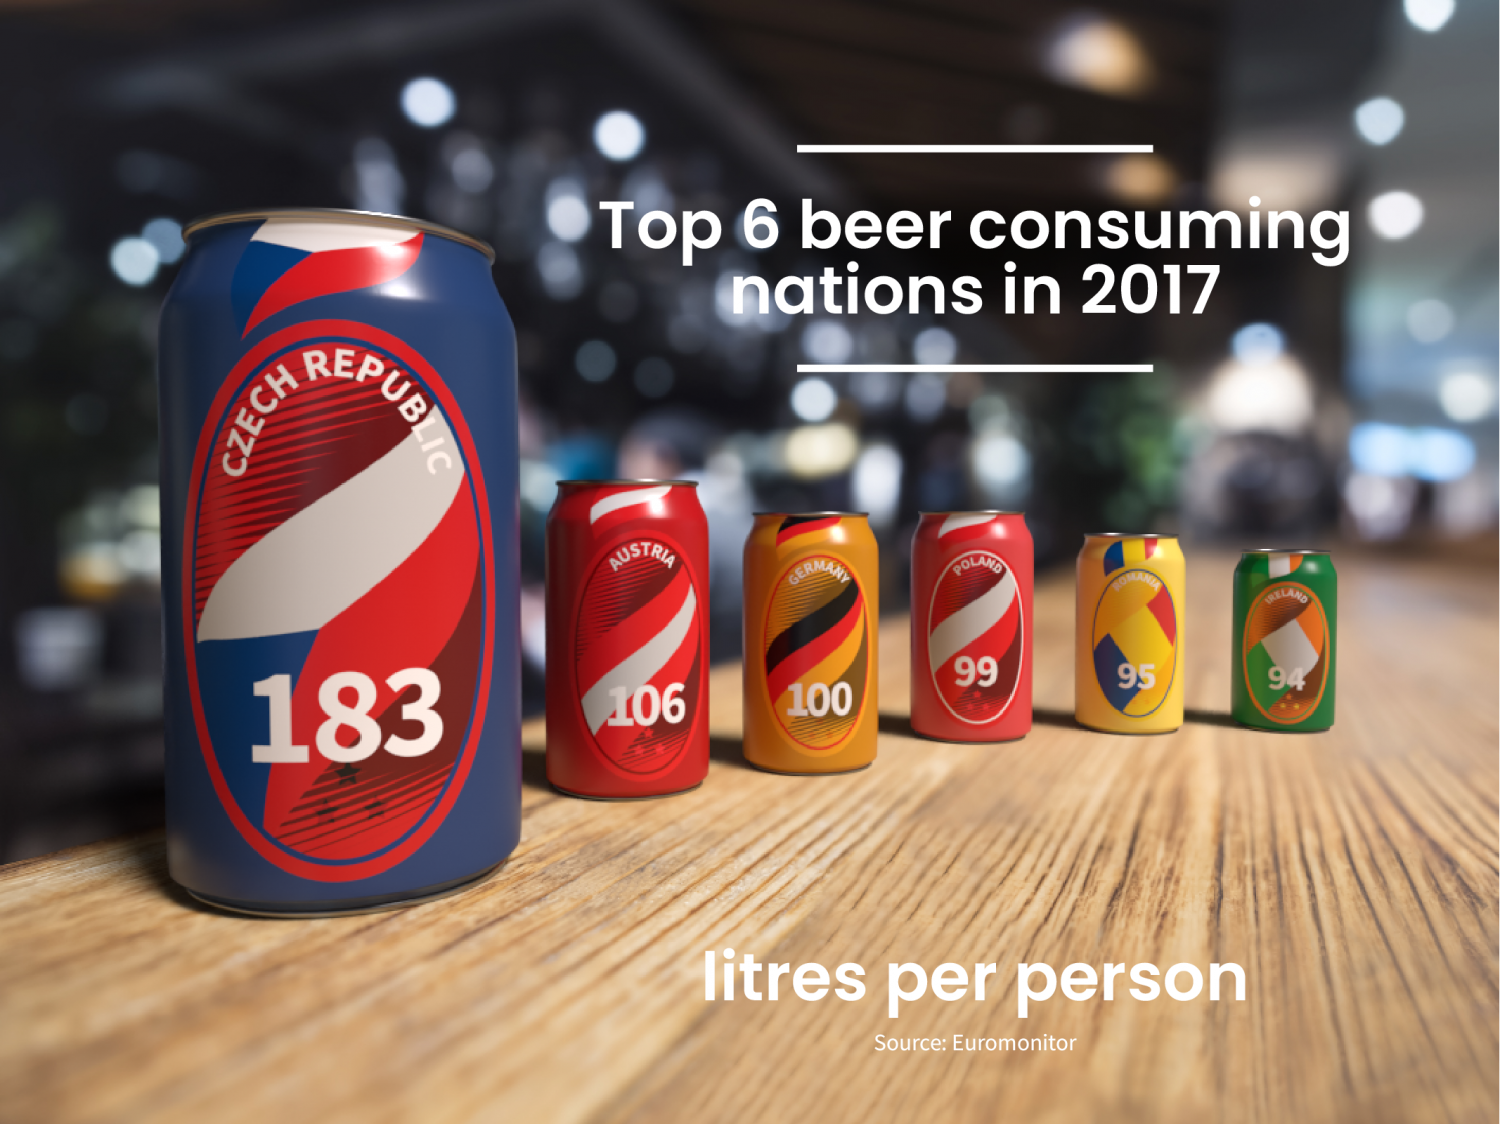 The Top 6 Beer Consuming Nations in 2017 Infographic